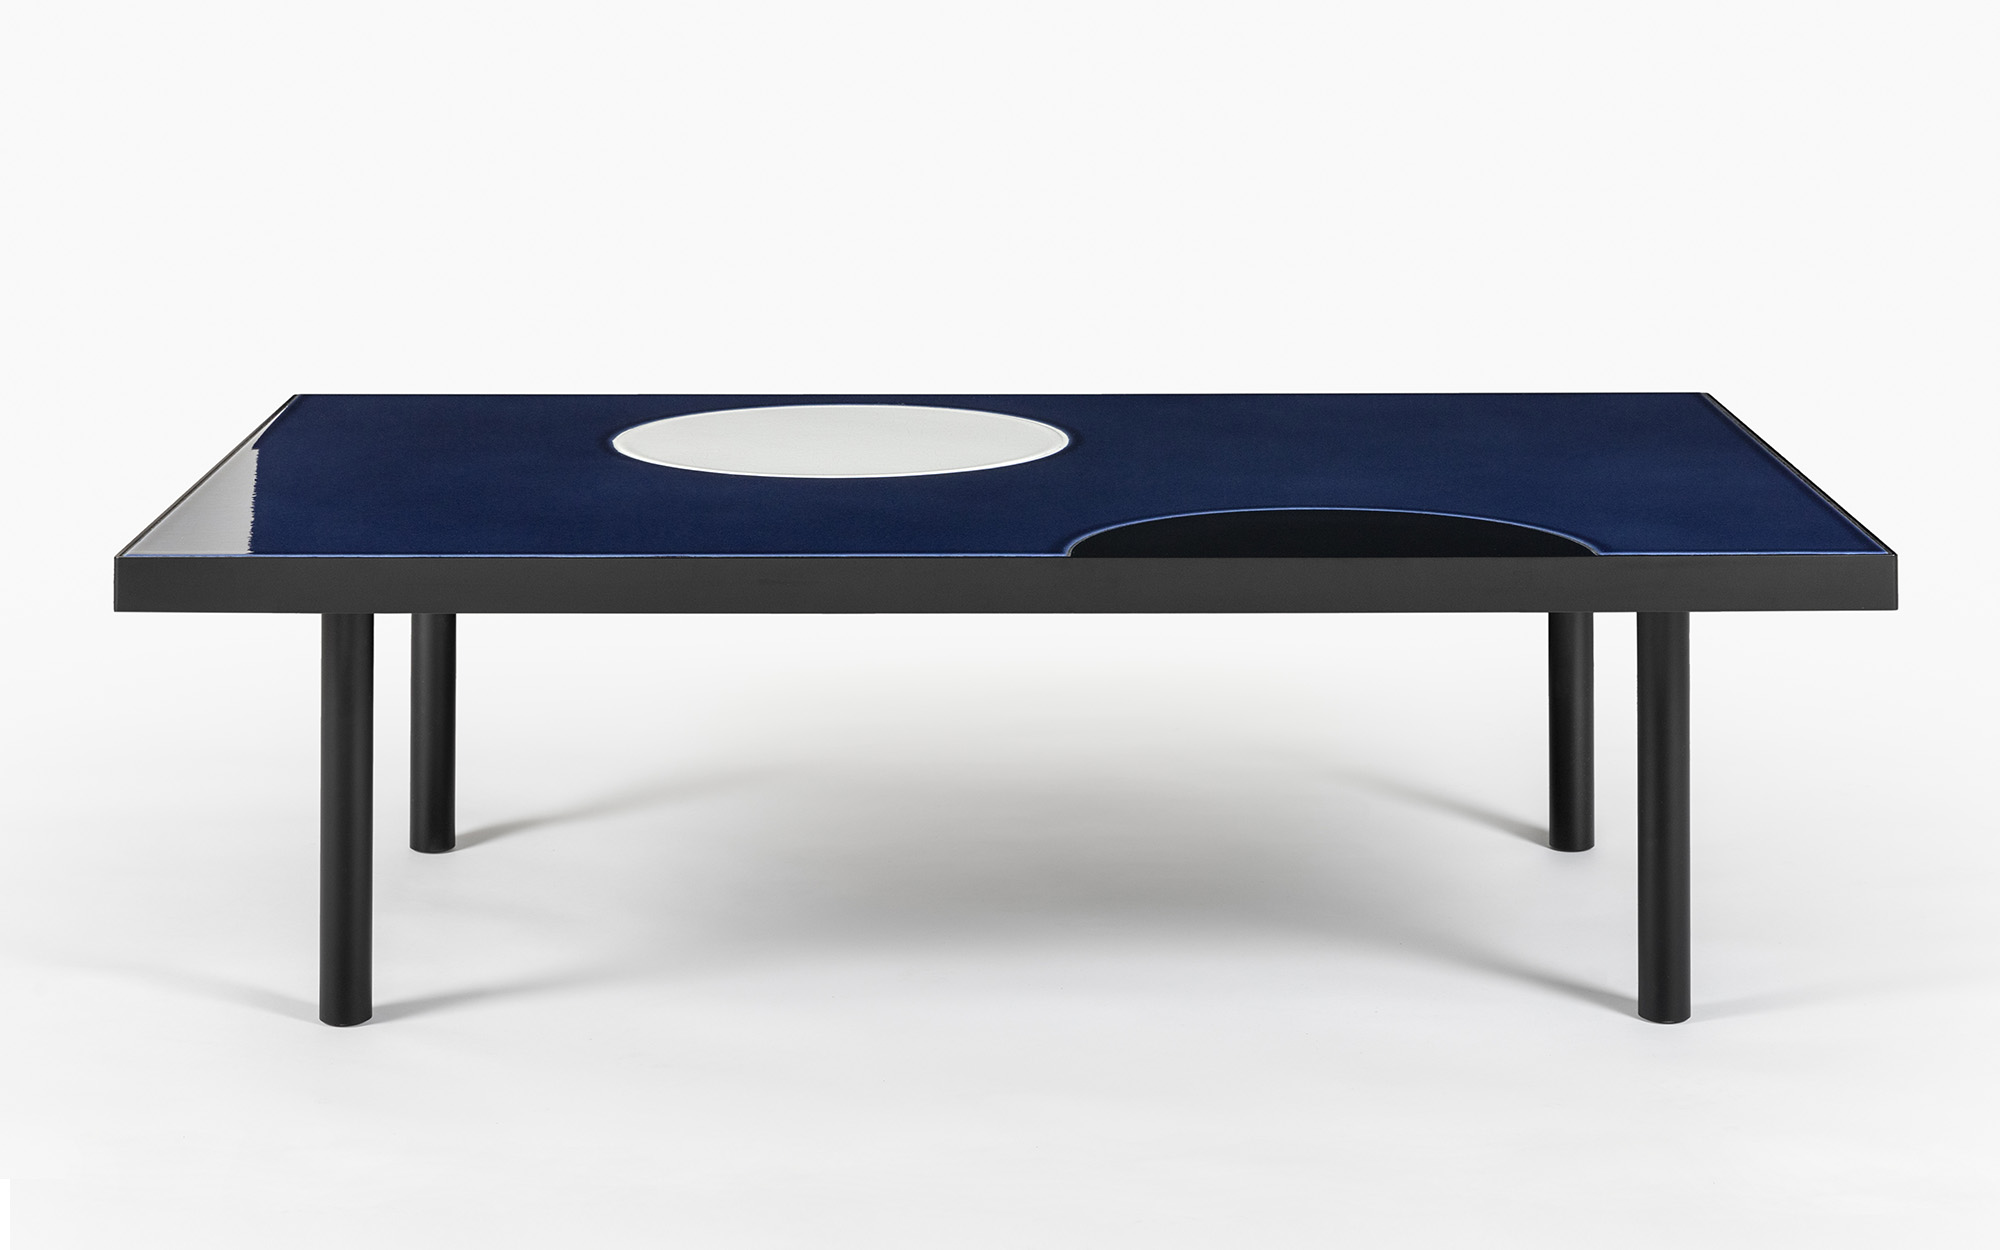 Pierre Charpin Translation Discolo Coffee Table